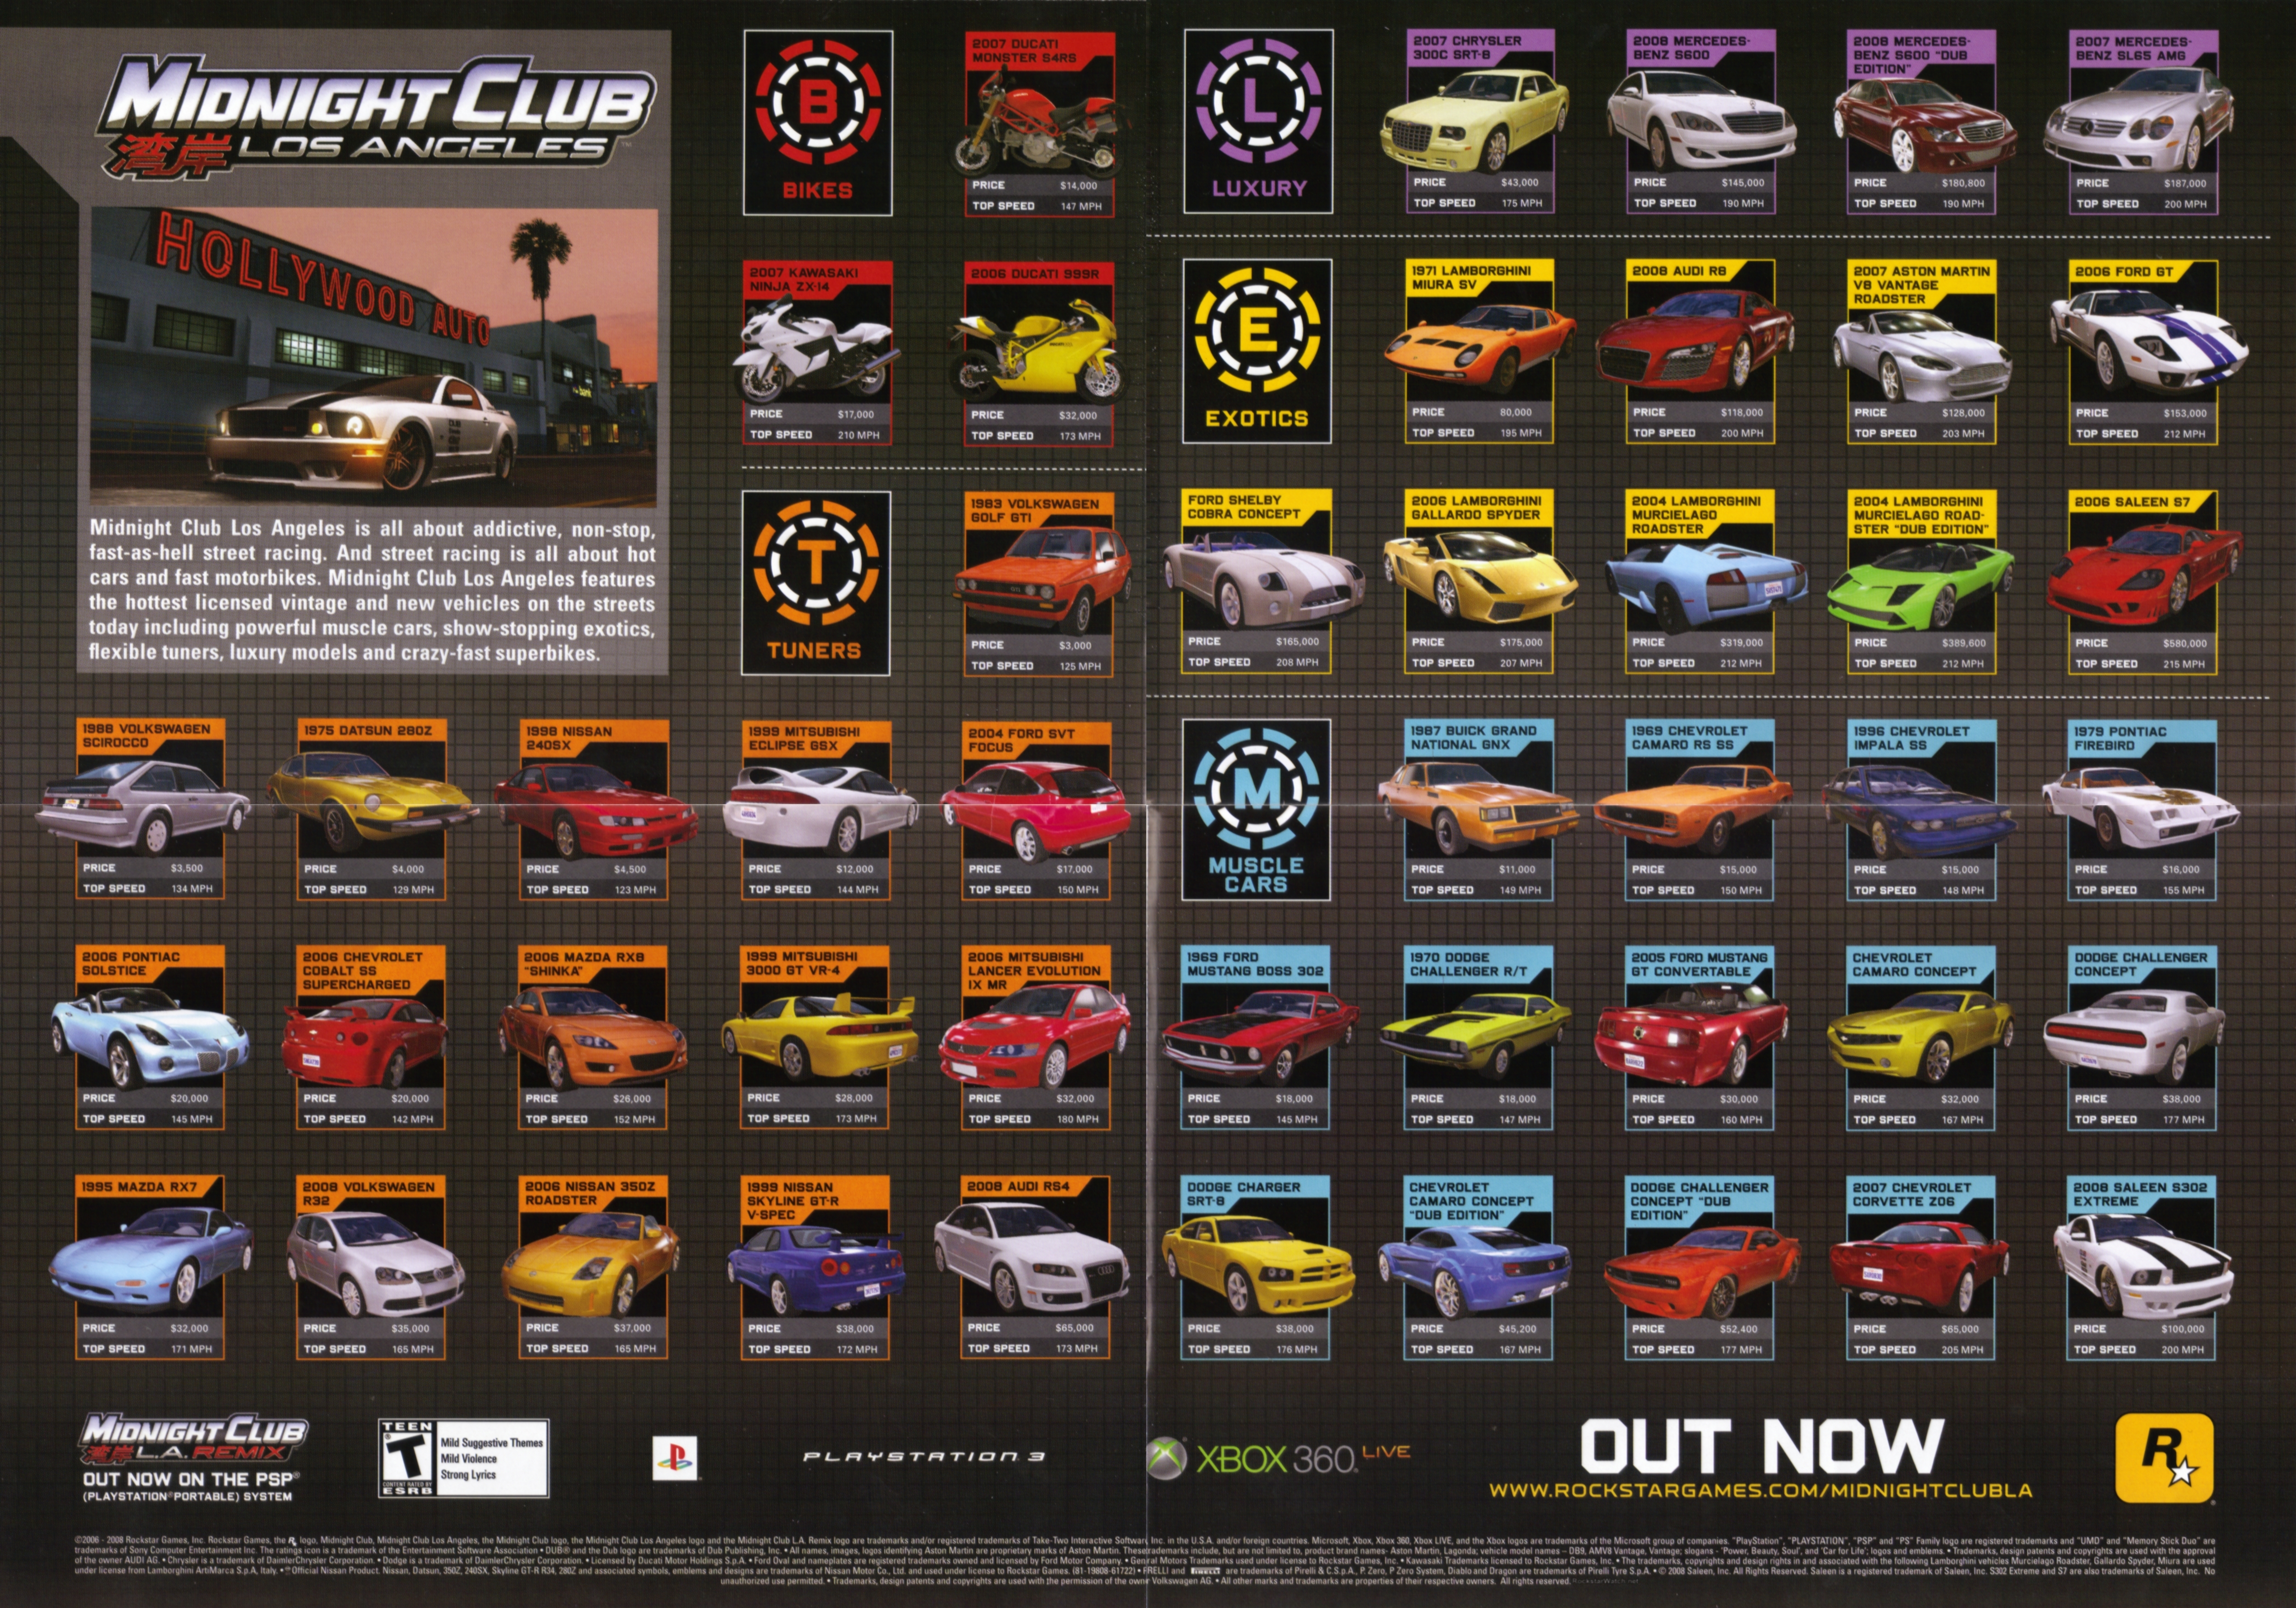 The Next Thing Official For Midnight Club Which